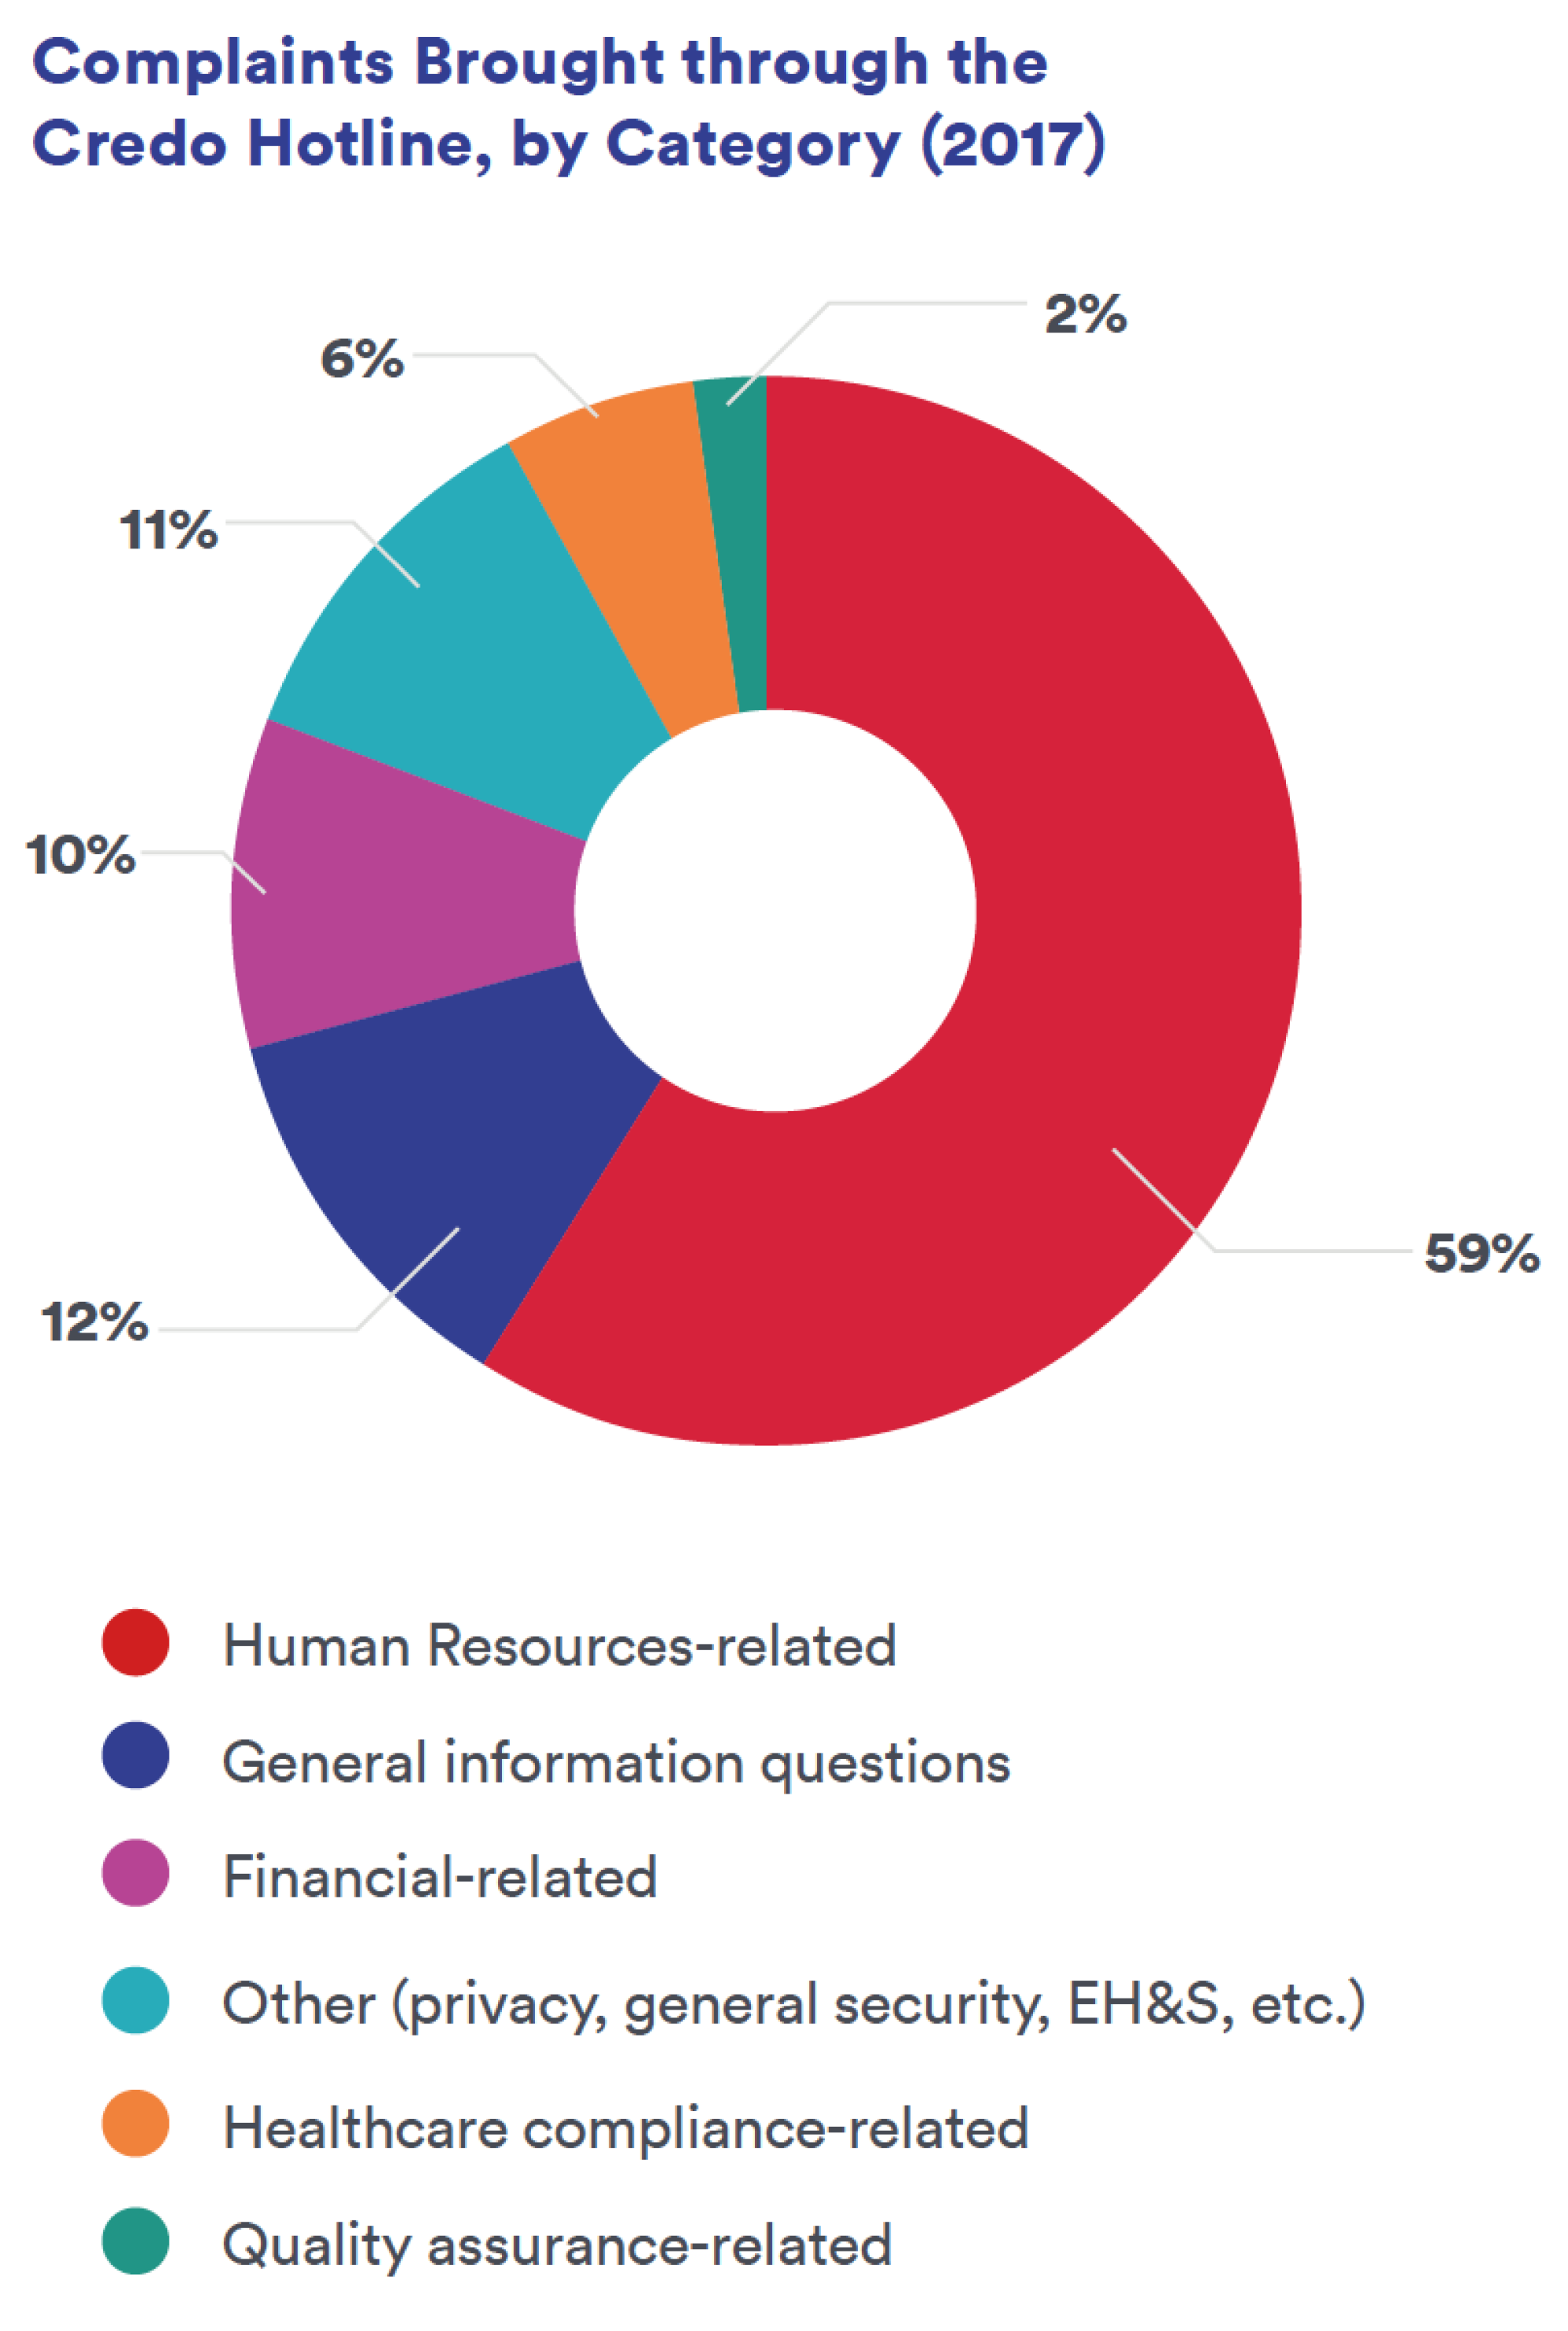 Complaints Brought through the Credo Hotline, by Category (2017)